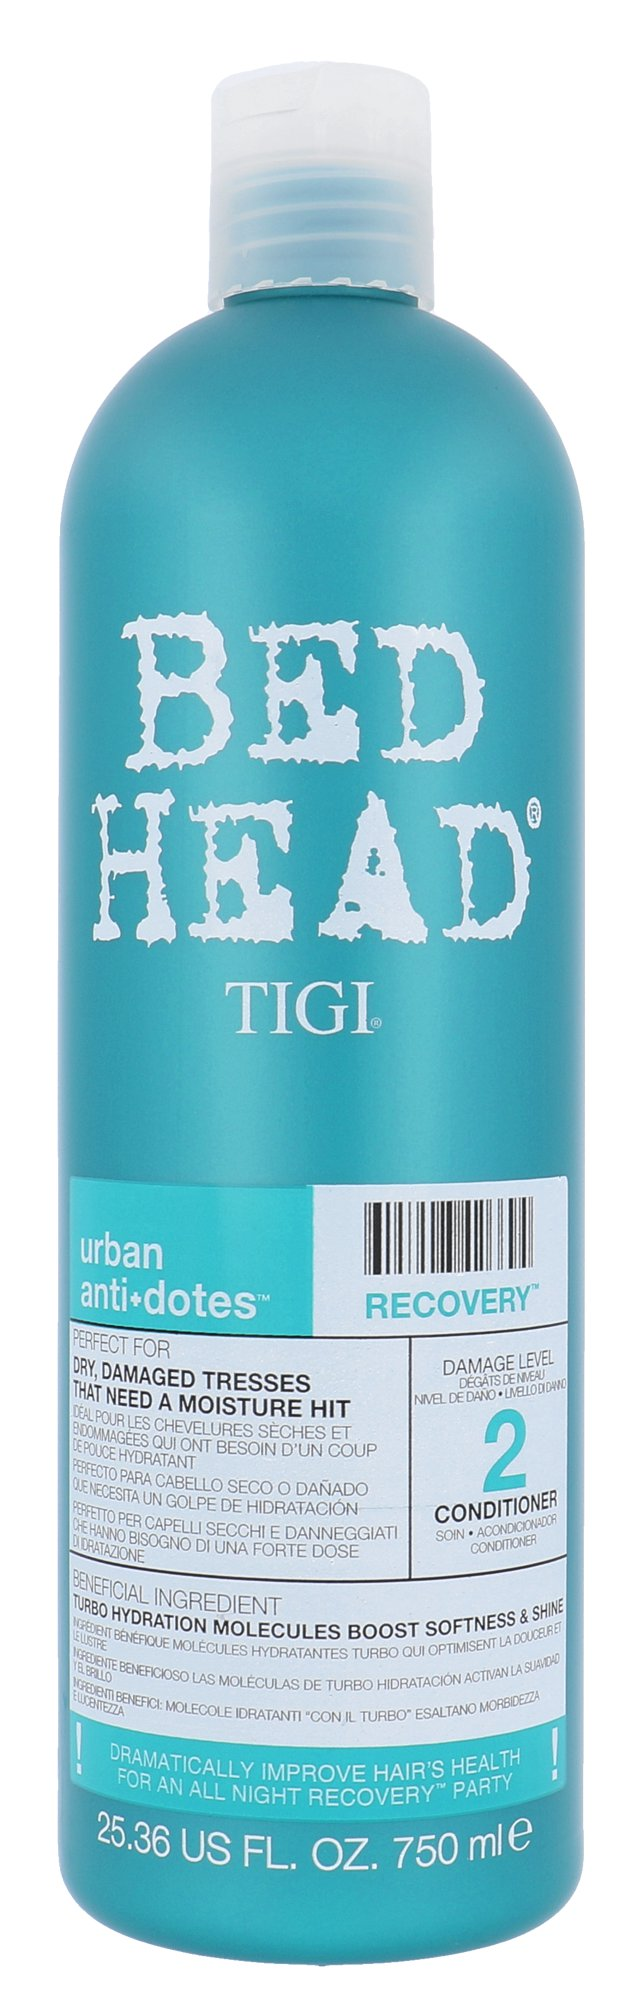 Tigi Bed Head Recovery (W)